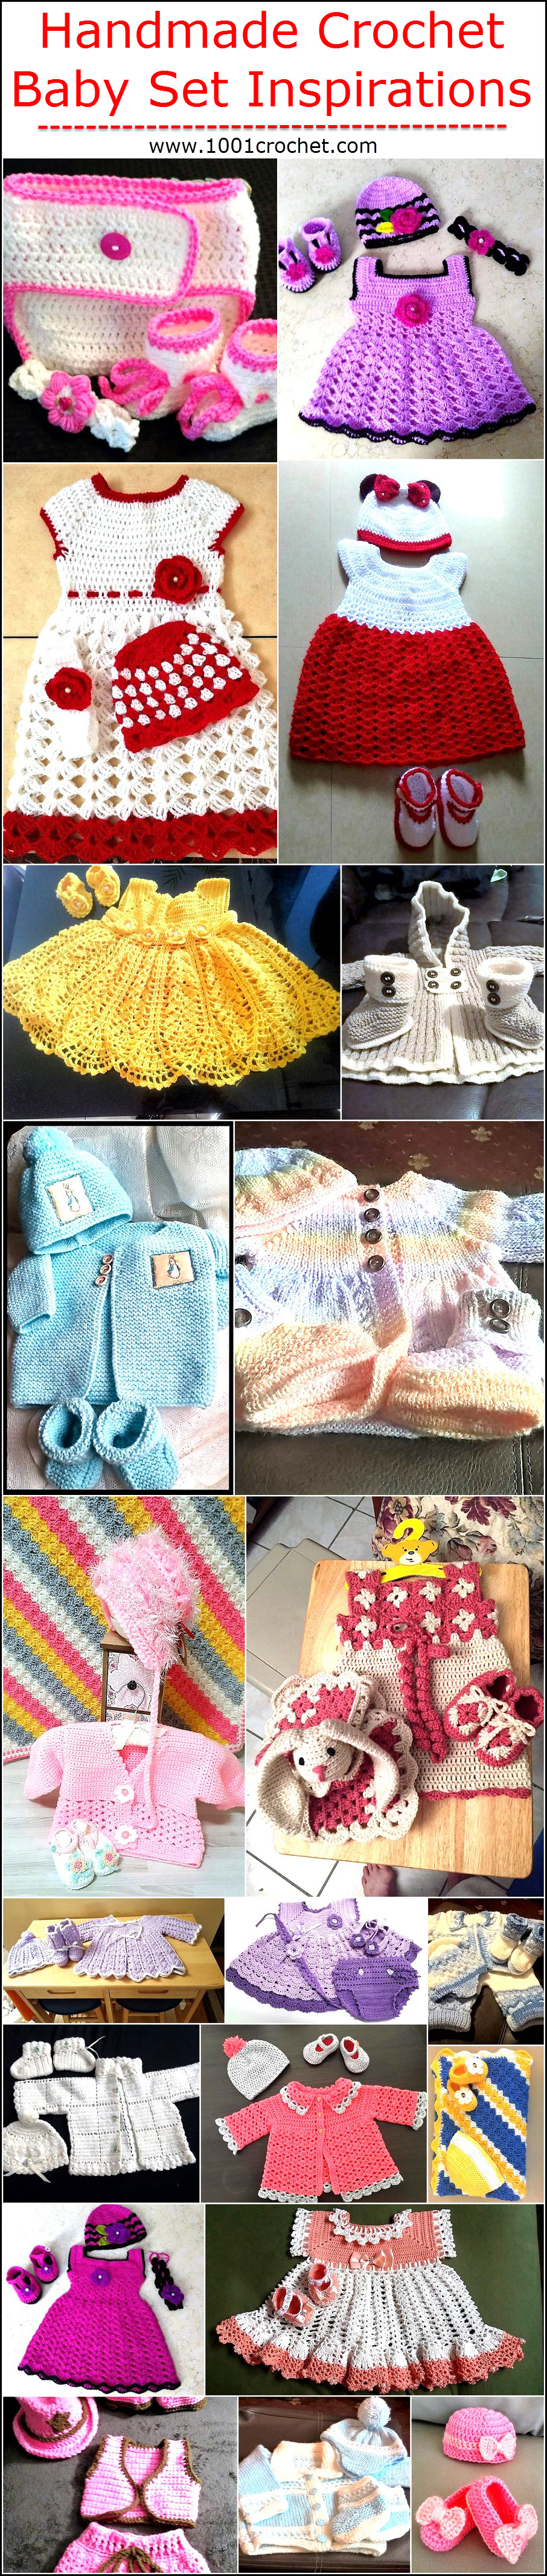 handmade-crochet-baby-set-inspirations